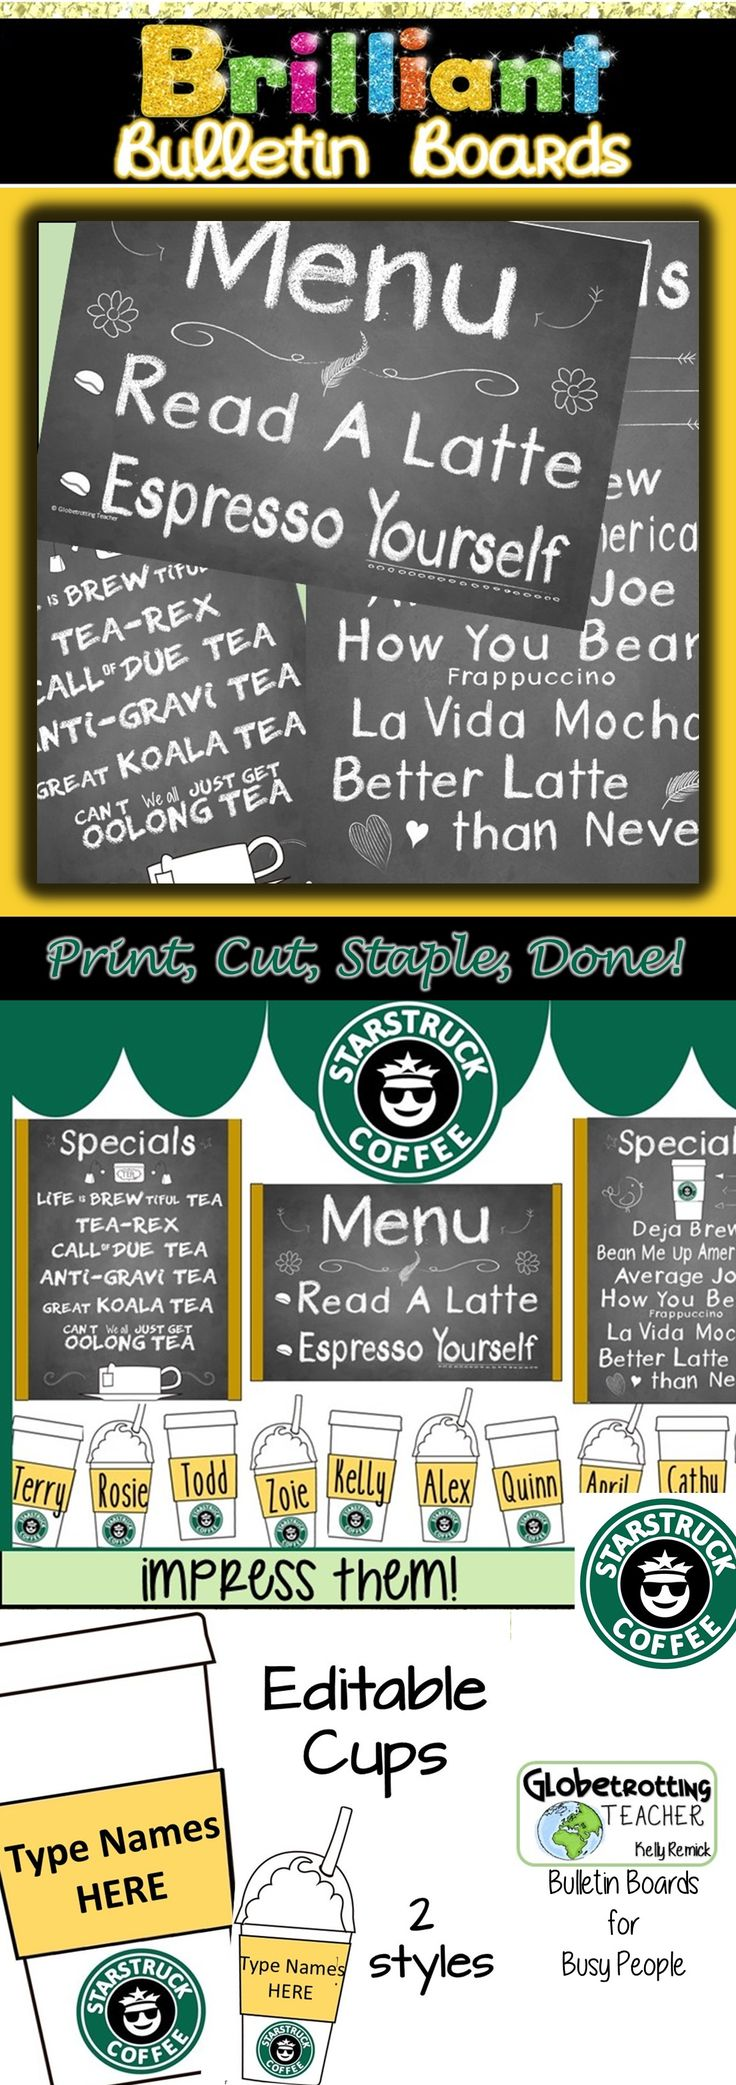 STARBUCKS  This editable coffee-themed bulletin board will bring smiles and giggles to people of all ages. The clever puns will keep people talking and learning. Liven up that space - it's so easy.  This gorgeous bulletin board can be on your wall (or door) in no time. All the thinking, planning, coordinating and measuring has been done for you. Just print, cut and pin up. Presto - An amazing board that looks like you spent many hours creating!